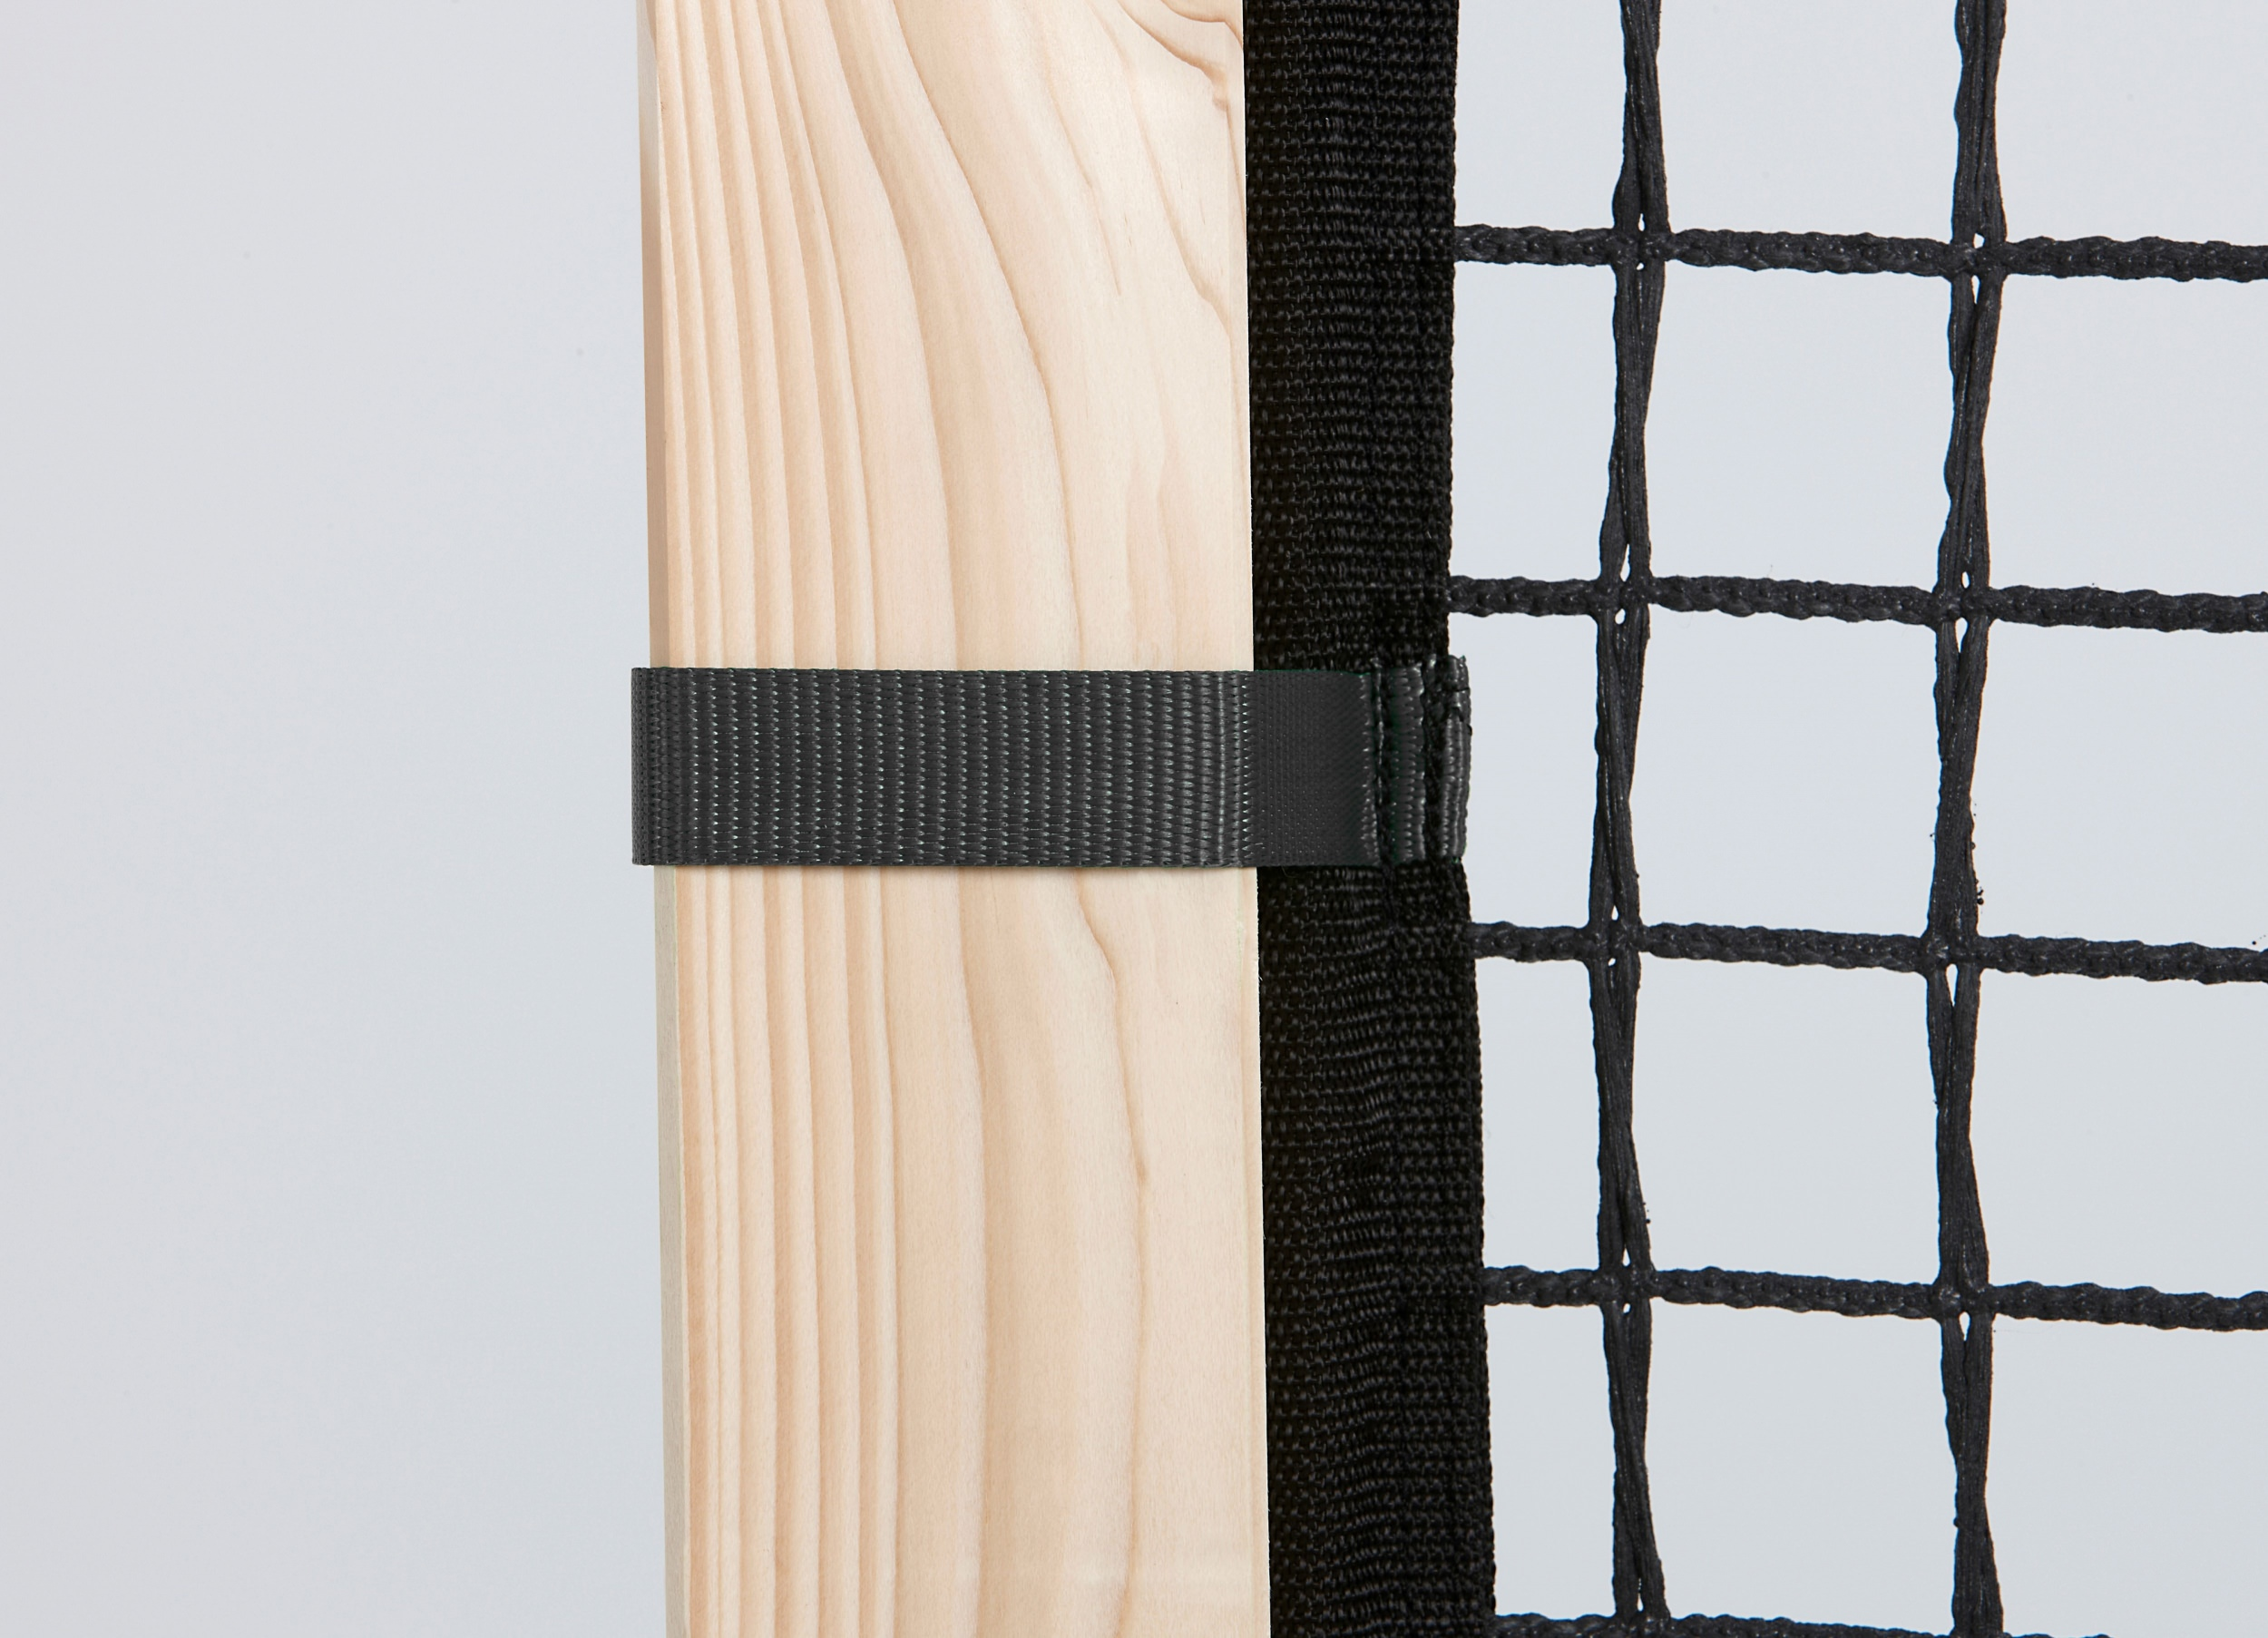 Kinder Treppengitter Staircase Barrier Net Available By The Meter